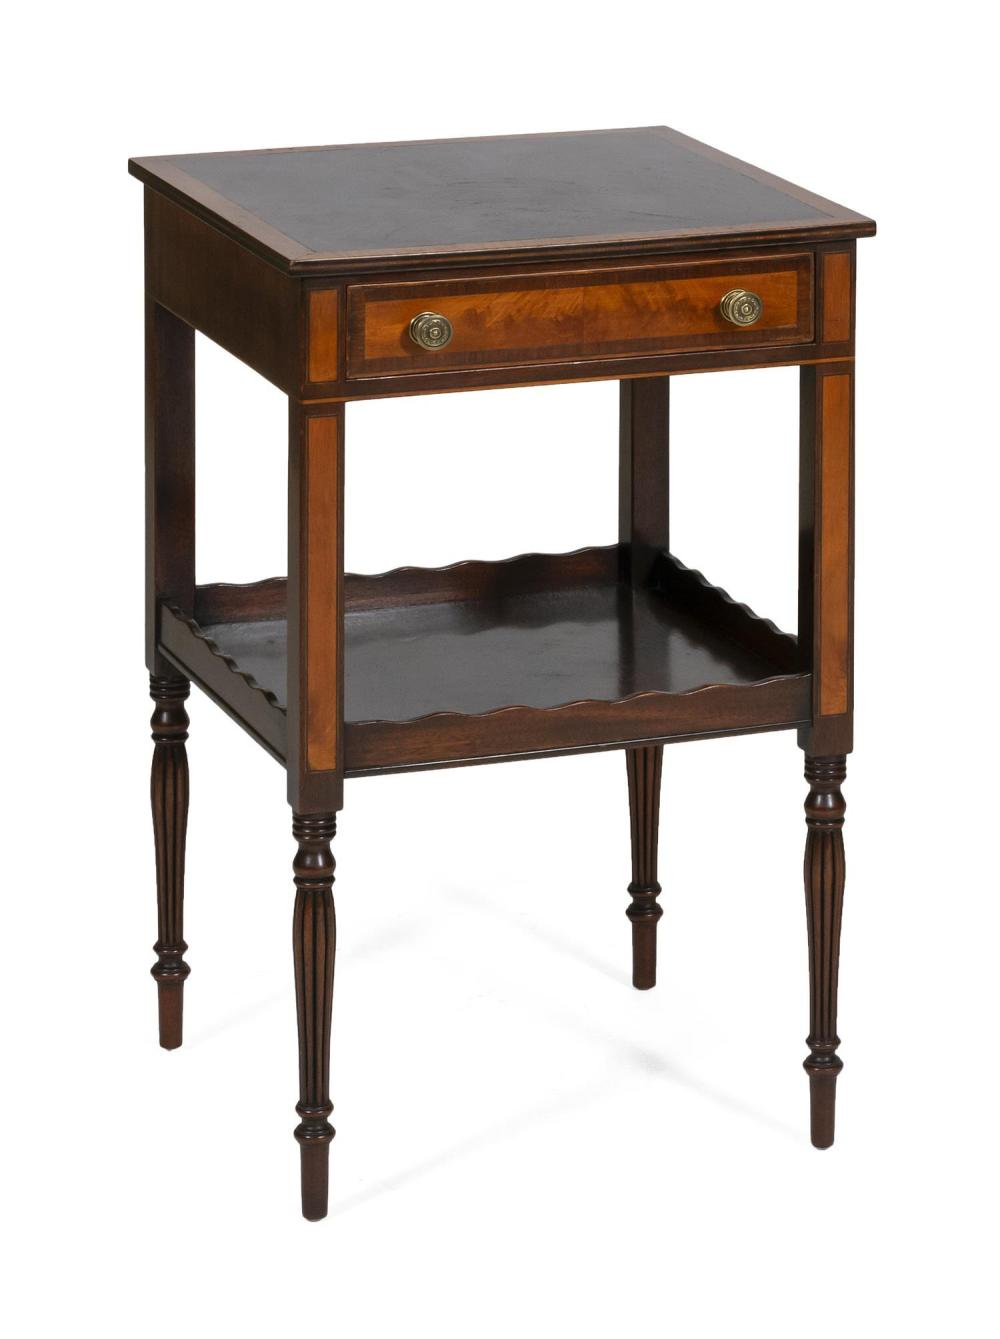 Sheraton Style Work Table Attributed To Kaplan Furniture Th